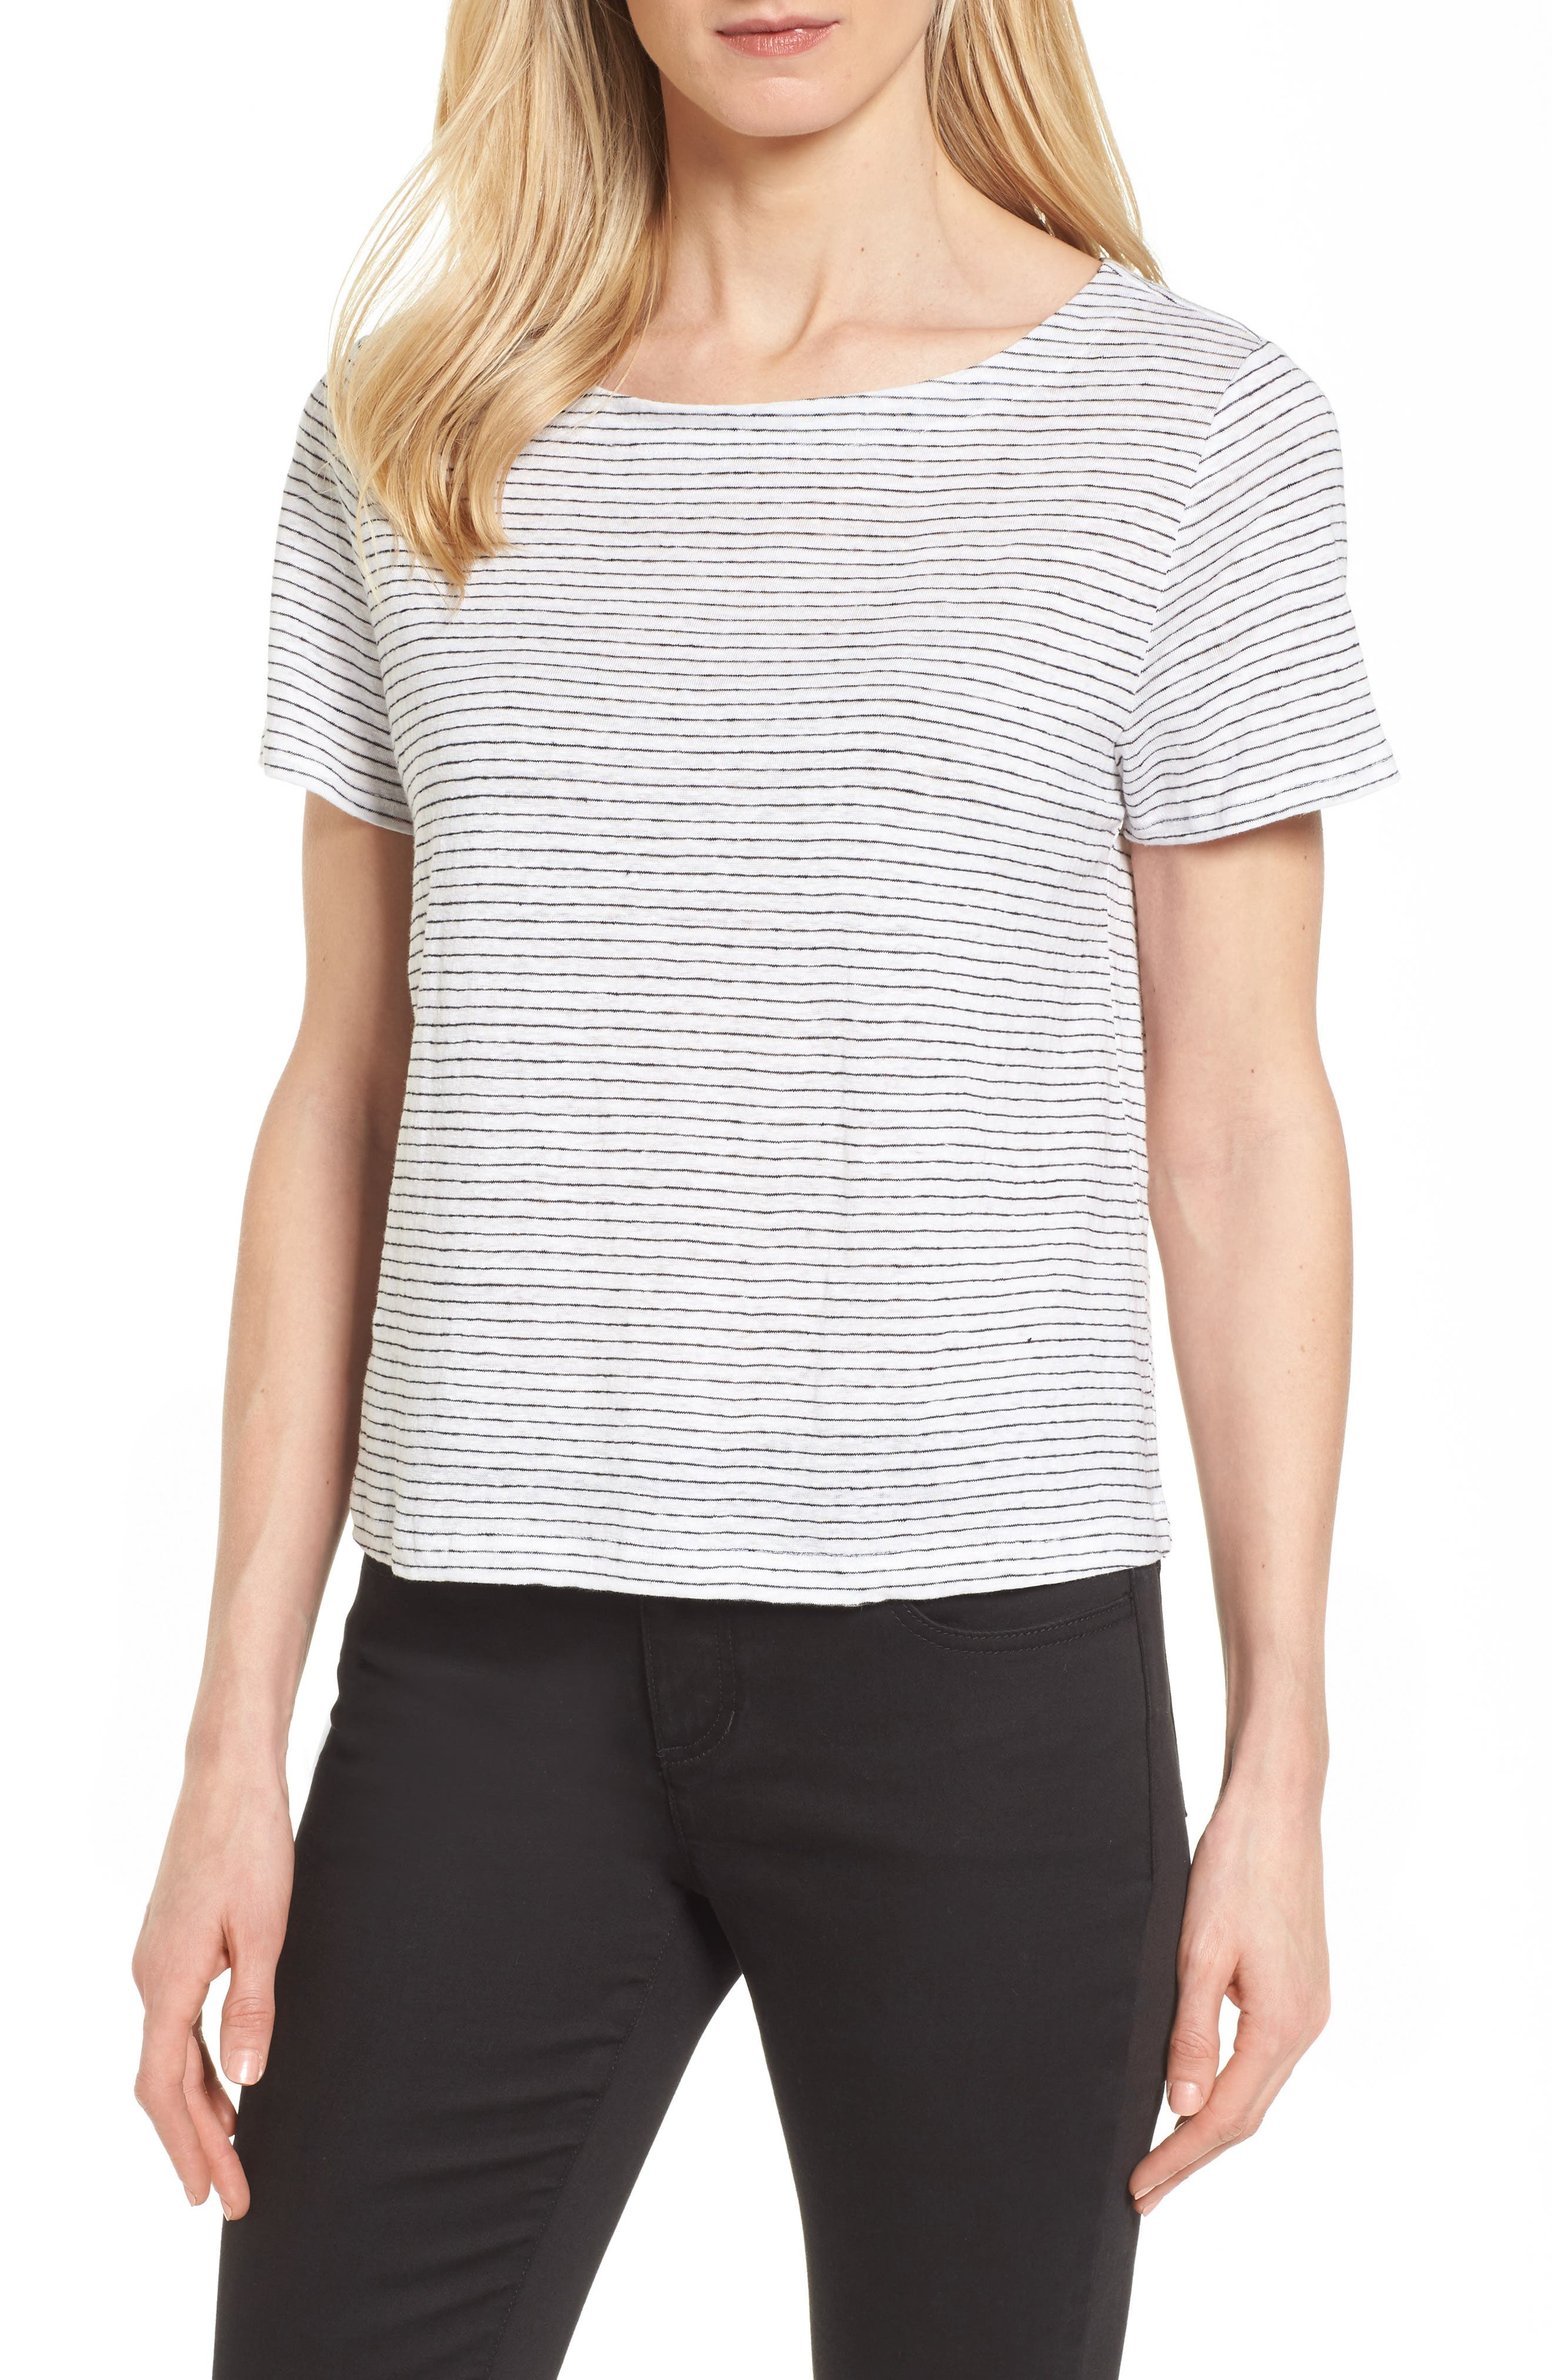 Eileen Fisher Organic Linen Tee (Regular & Petite)